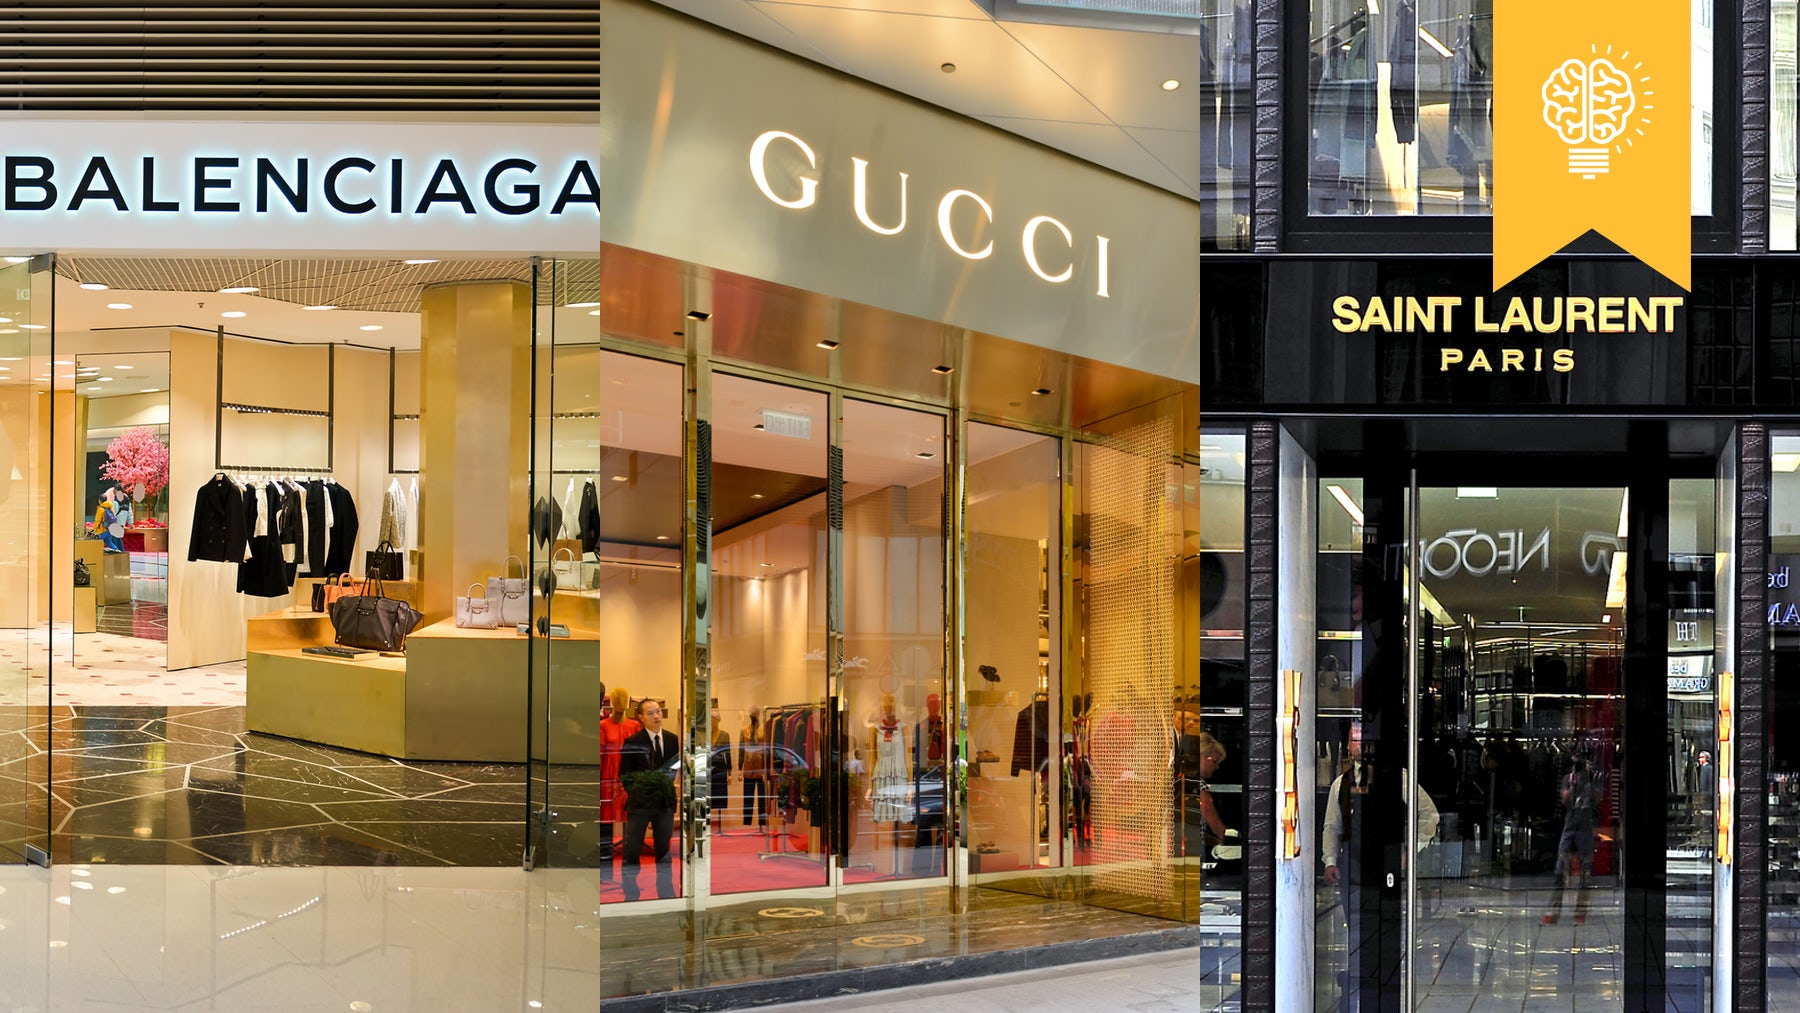 Gucci, Balenciaga and Saint Laurent stores | Source: Shutterstock